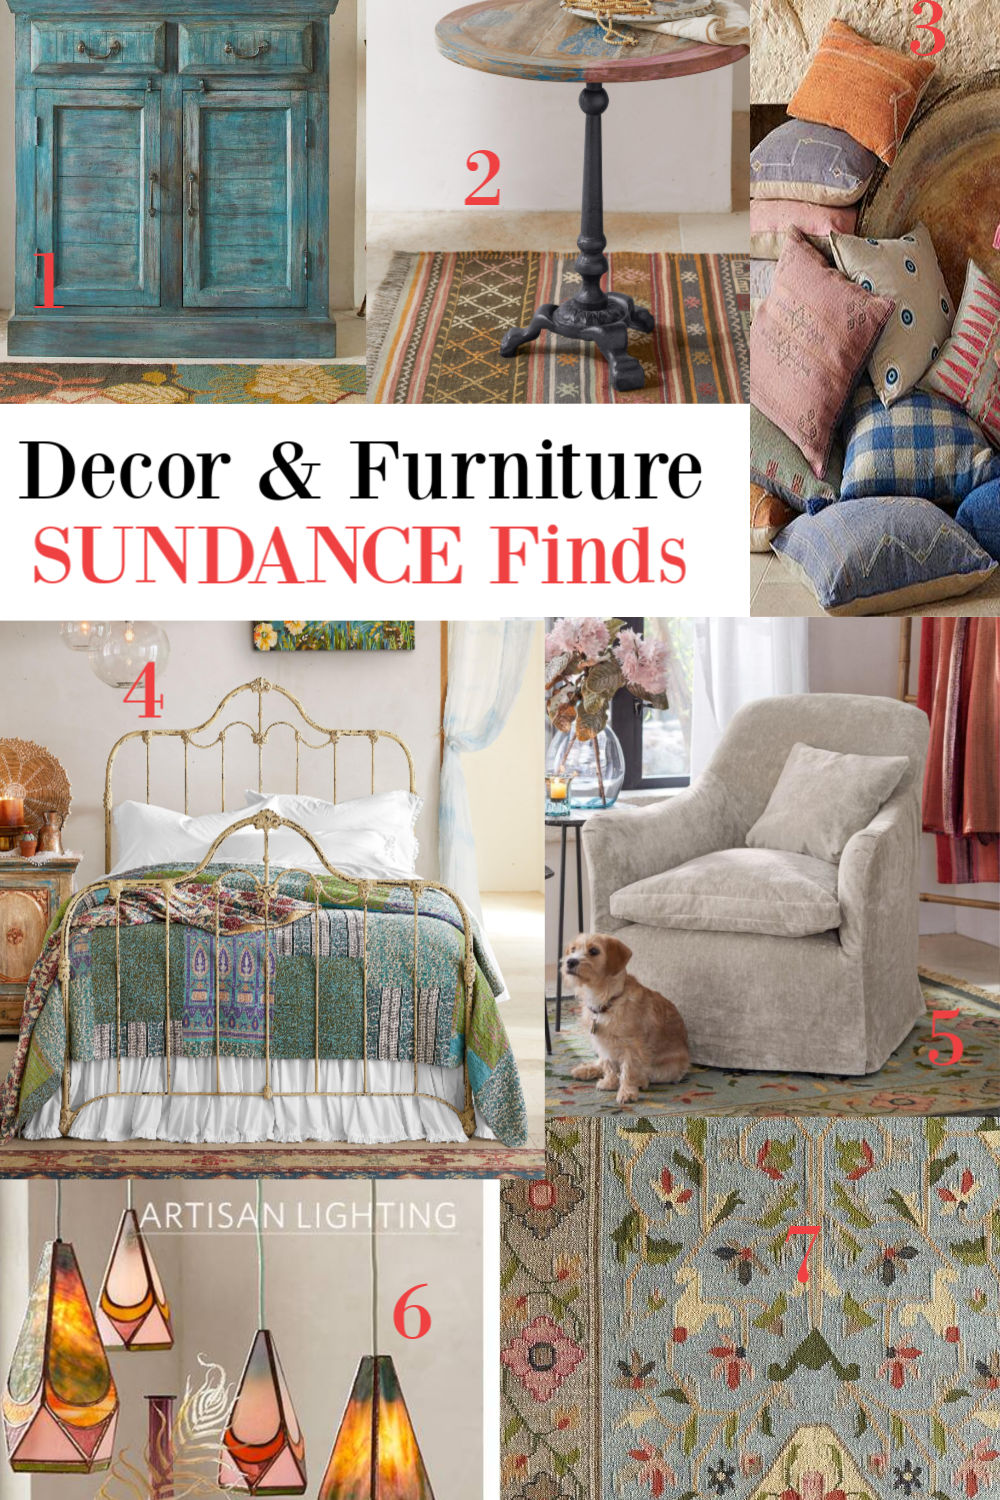 Sundance decor and furniture finds on Hello Lovely Studio. #homedecor #furniture #interiordesign #sundancecatalog